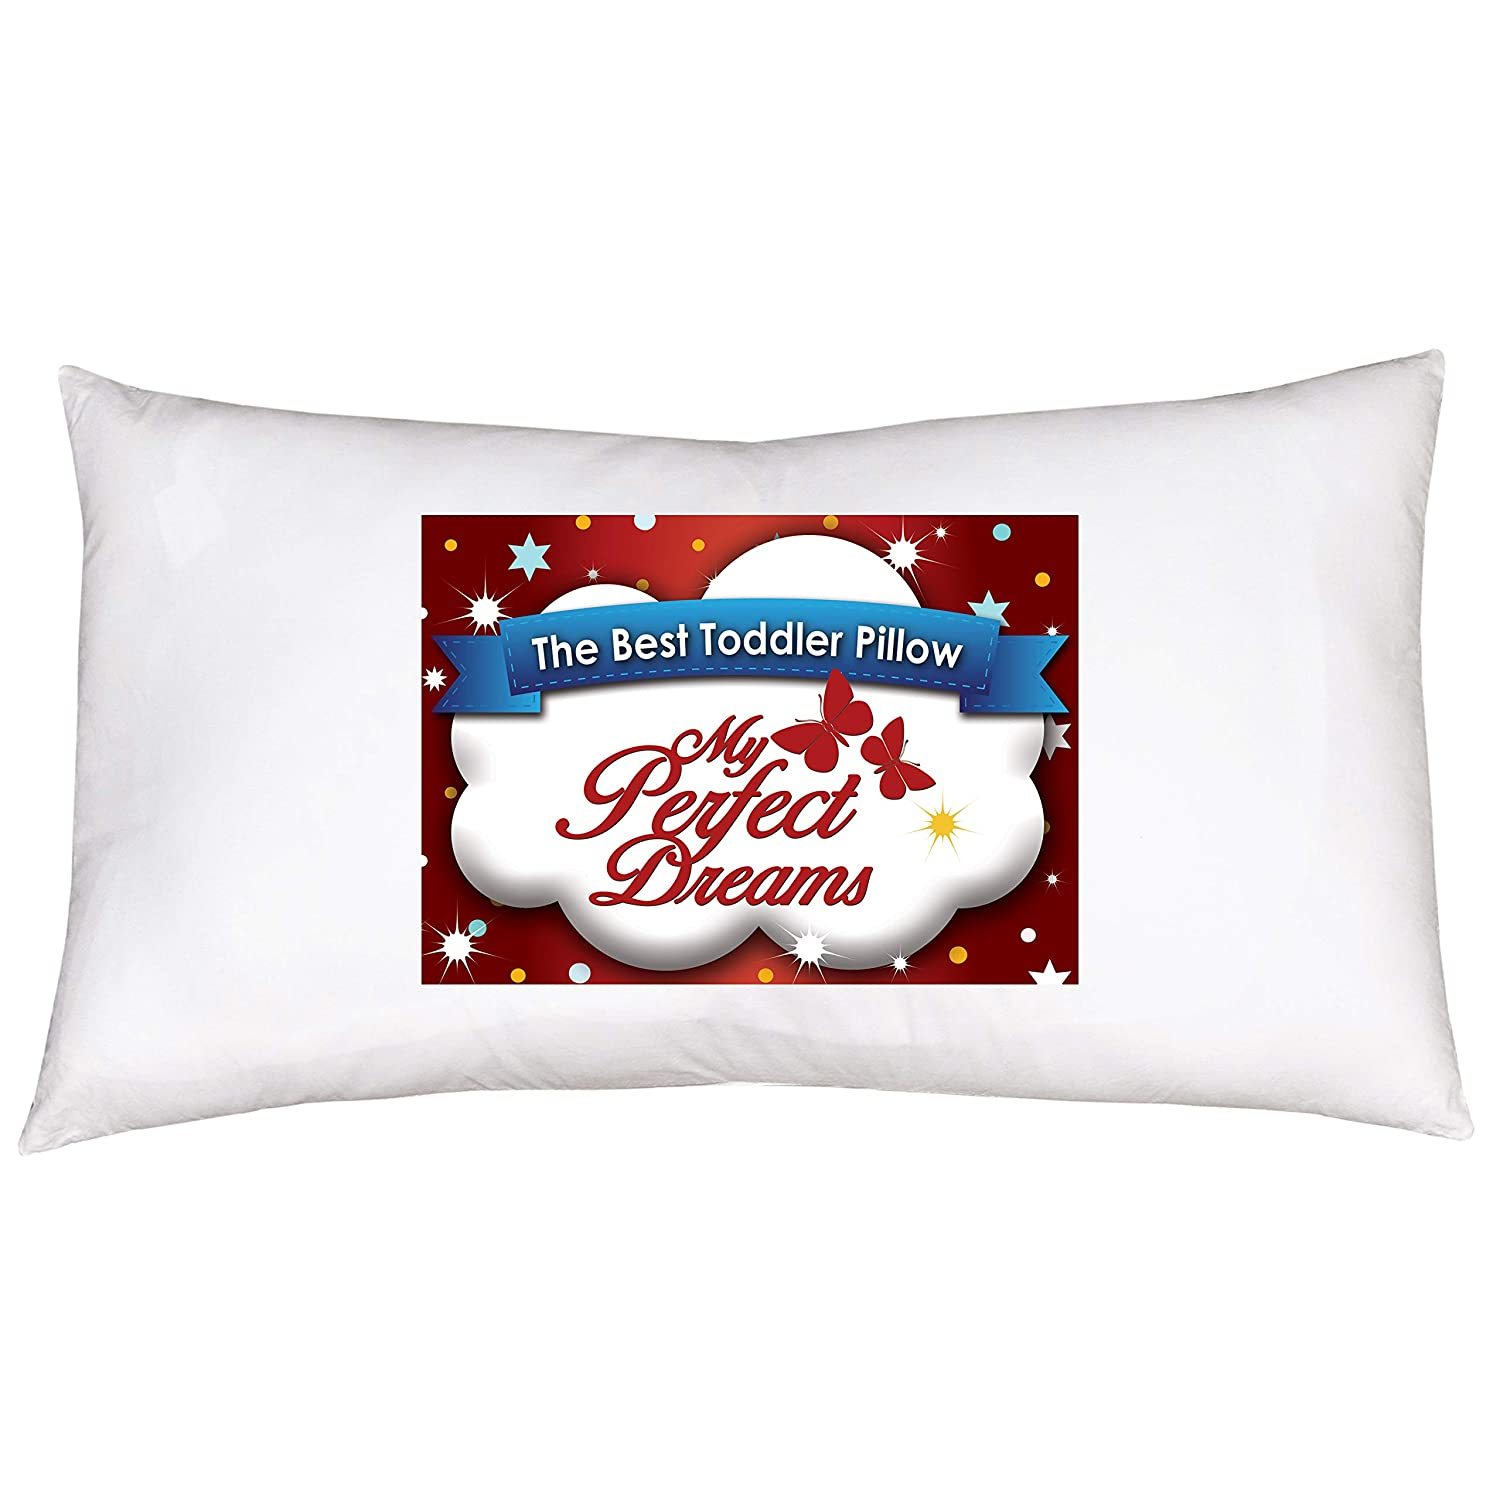 My Perfect Dreams Toddler Pillow Includes Pillow CASE Your Child Will Never Sleep Better Premium Quality Fiber Filling Plus Super Soft 100% Cotton Pillow Case SYNCHKG107877